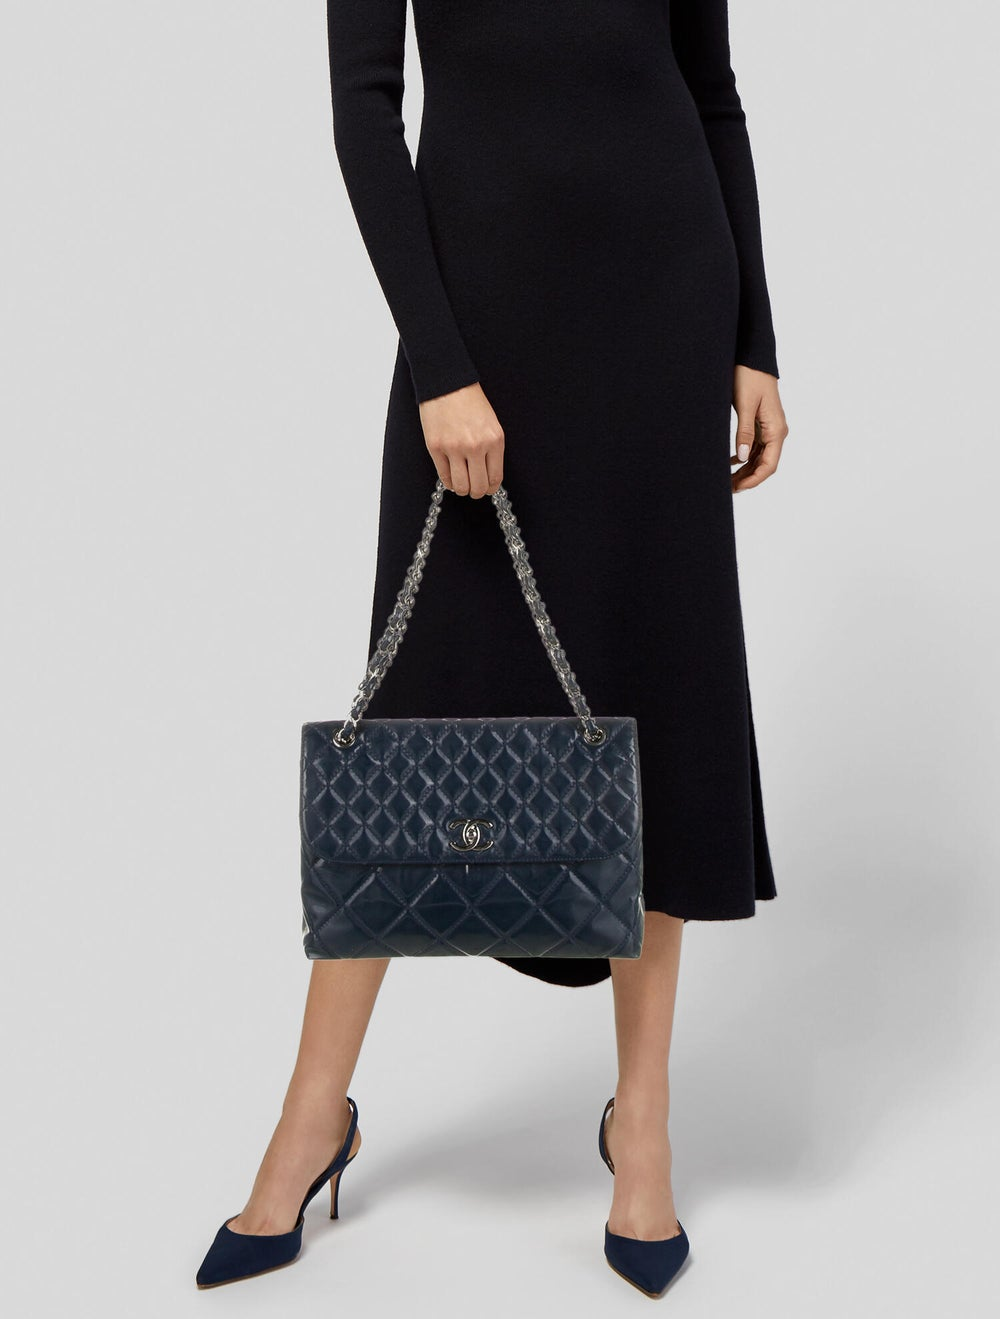 Chanel In The Business Patent Flap Bag Blue - image 2